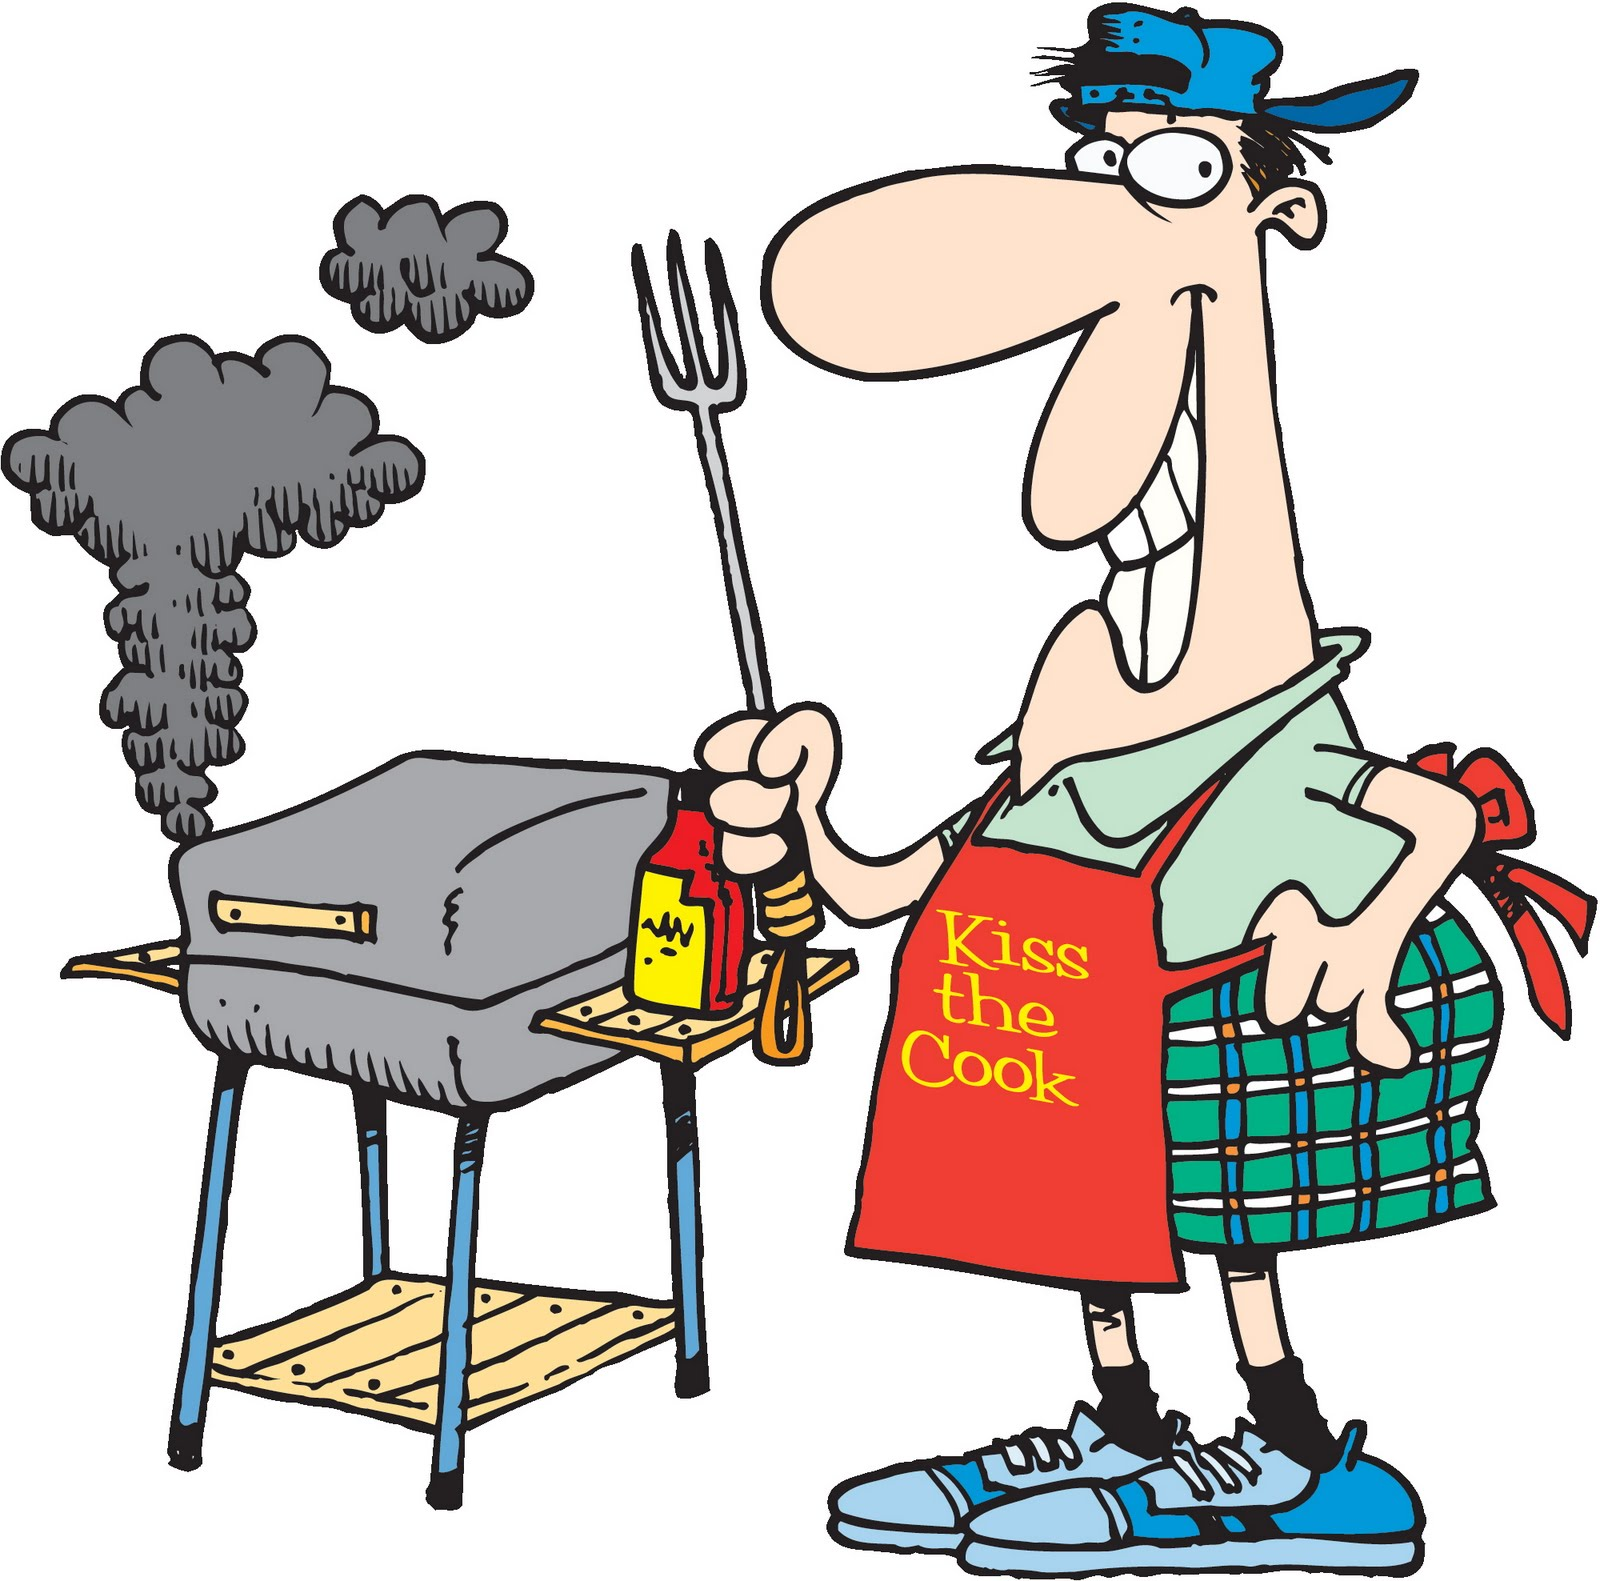 Barbecue clipart summer. Free and fun bbq